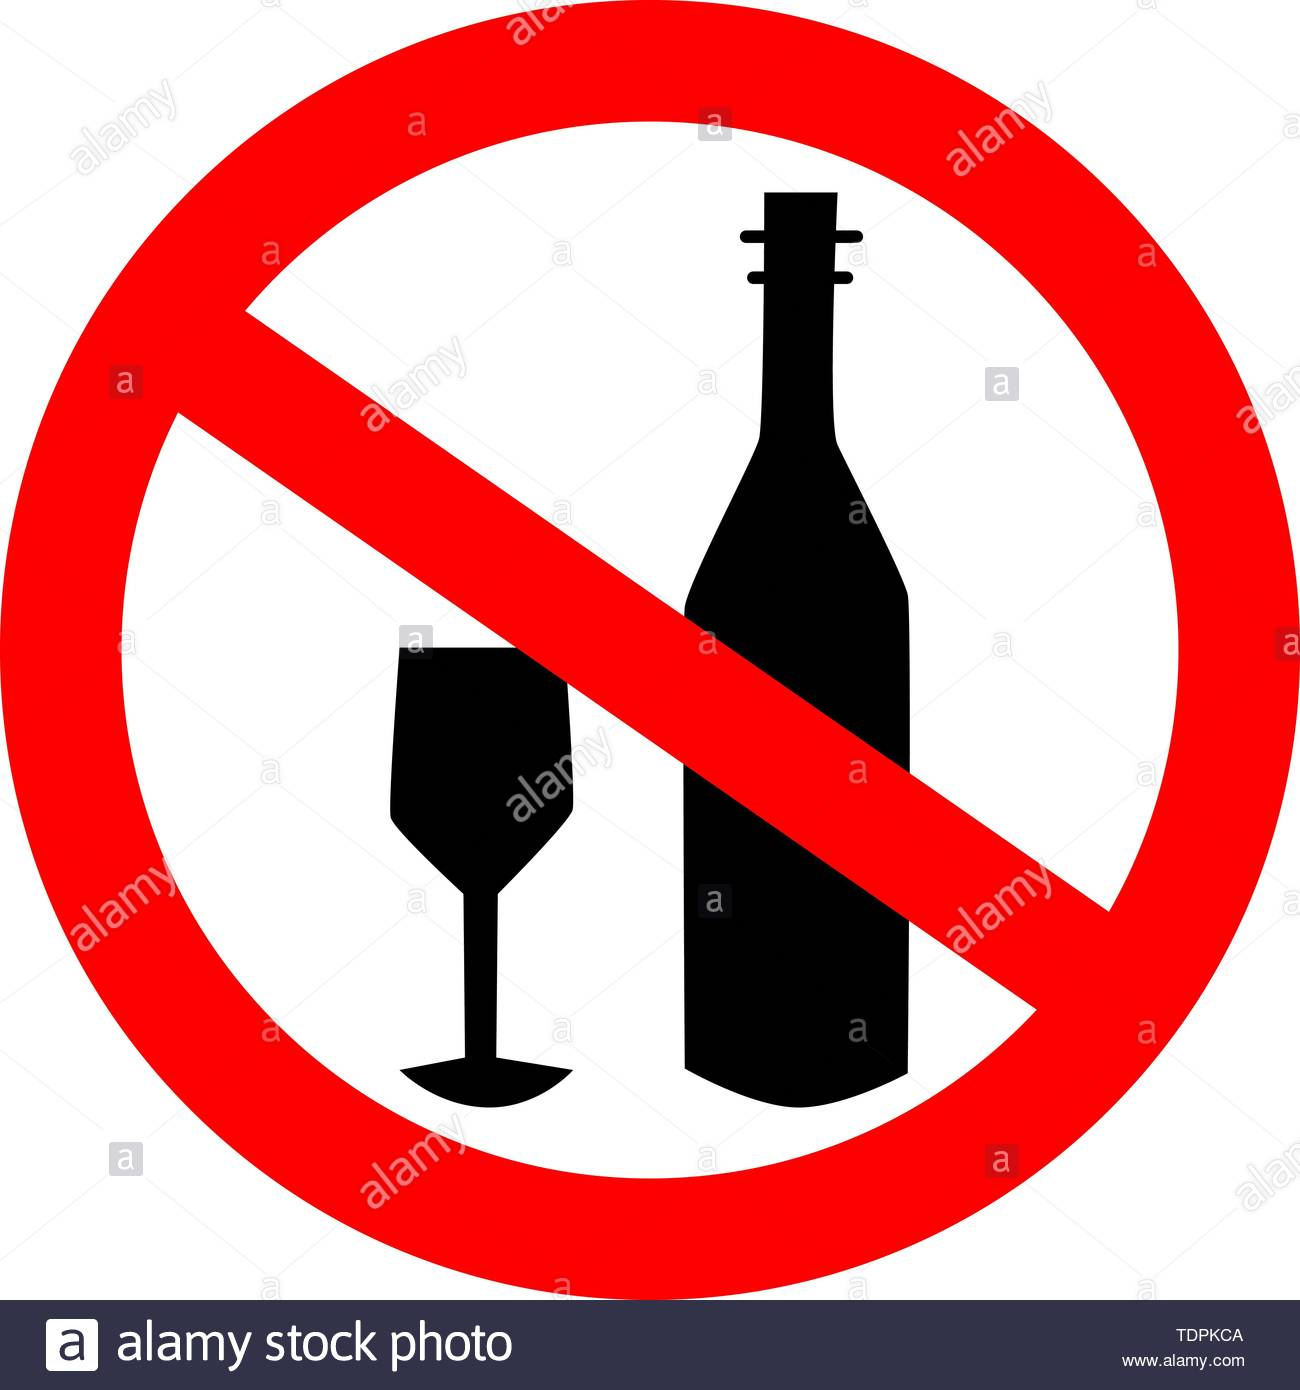 no alcohol drink sign logo element No drinking sign No alcohol 1300x1390